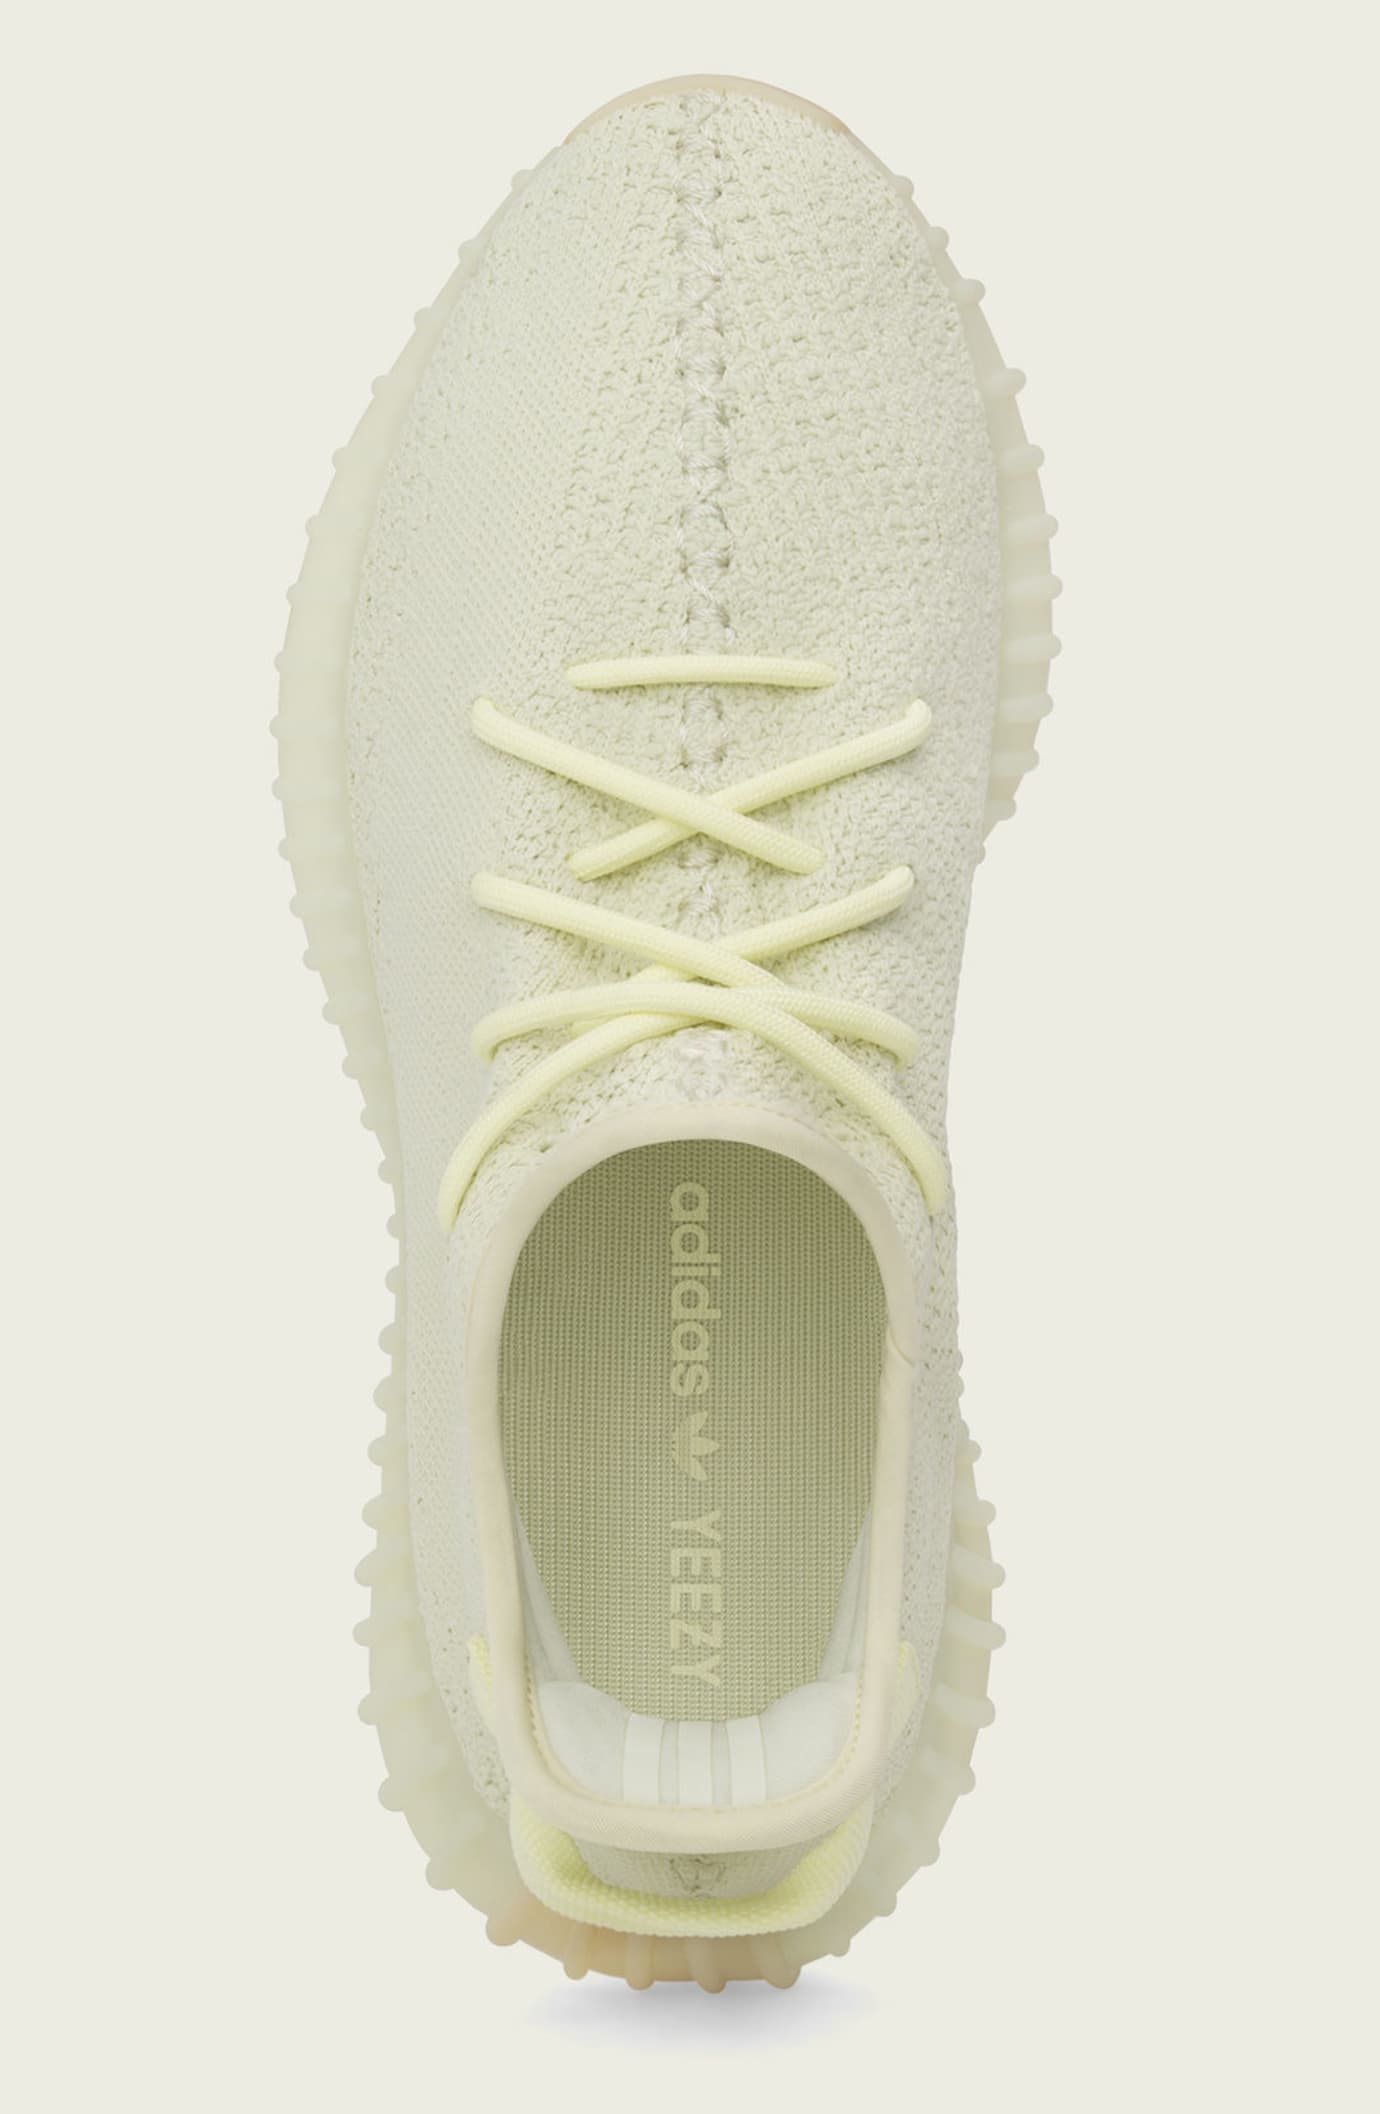 F36980 Date 'butter' Release 2018 V2 Adidas January Boost Yeezy 350 Yg6ybf7